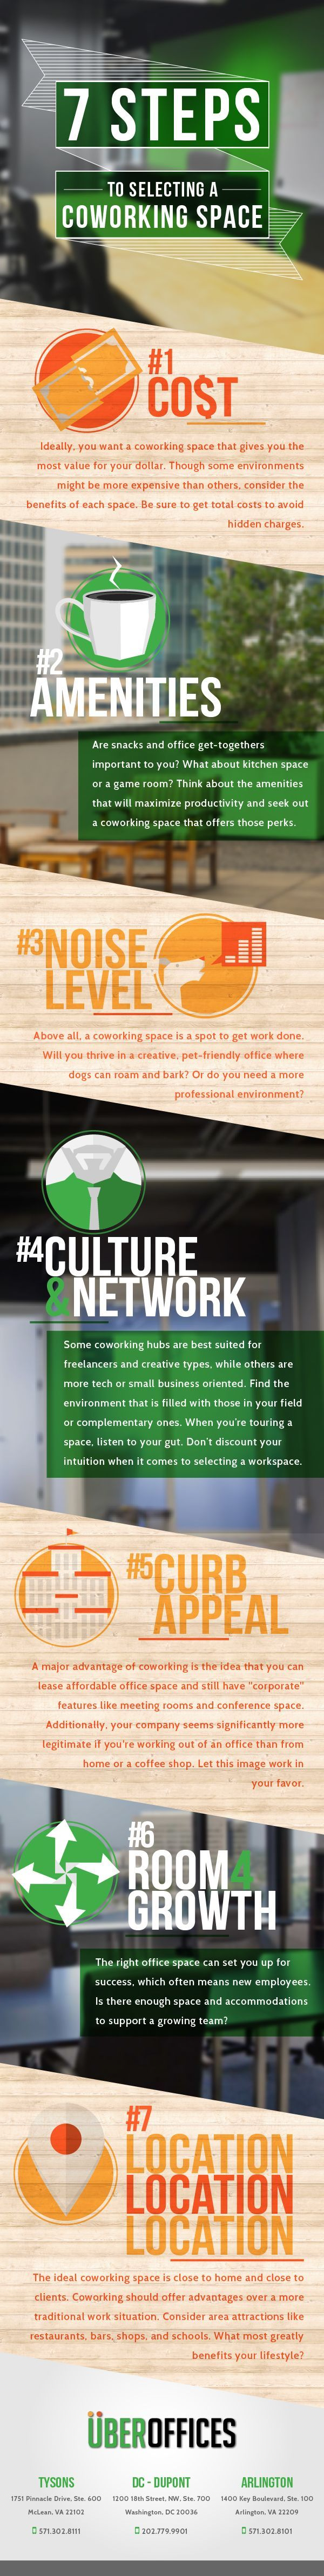 #infographic 7 steps to select a #coworking place